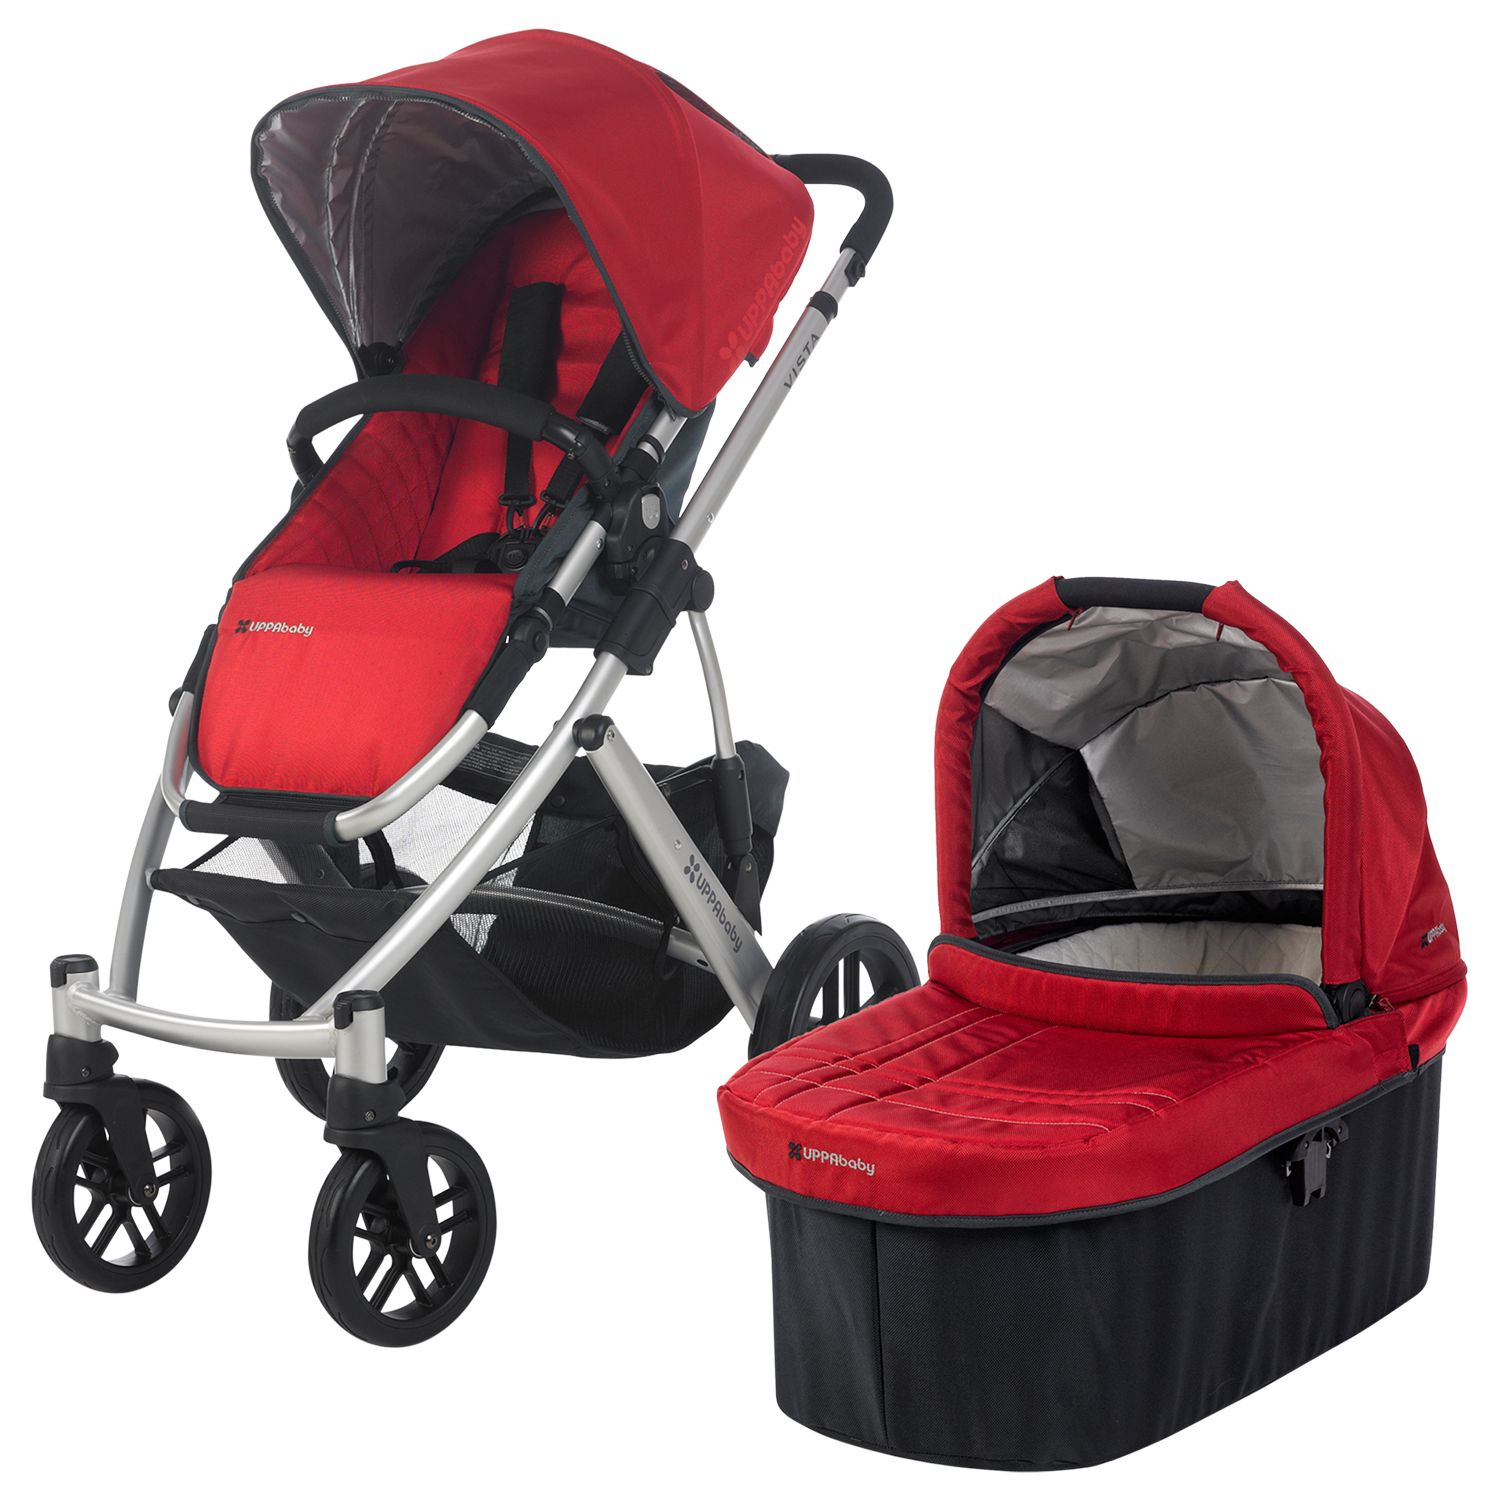 Prams and Pushchairs Buying Guide